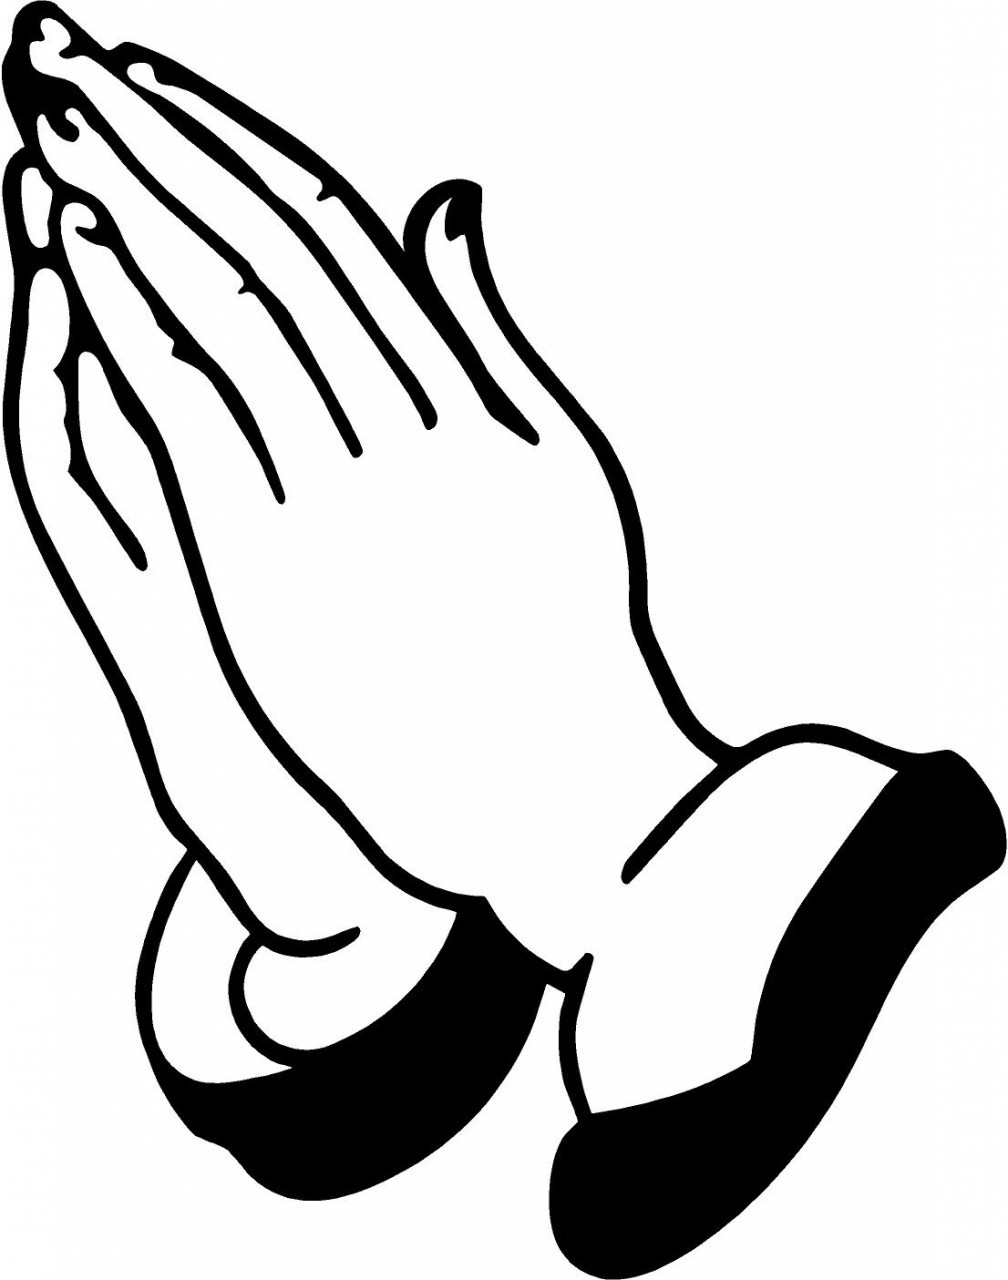 Hands joined in prayer clipart black and white vector library Prayer Clipart Black And White | Free download best Prayer Clipart ... vector library